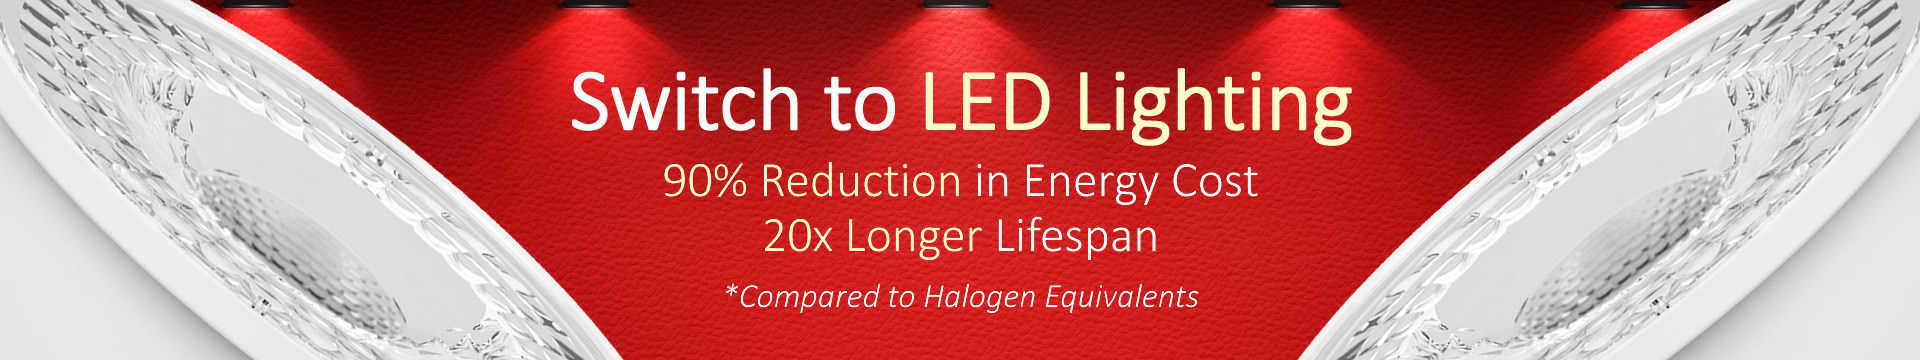 Switch To LED Lighting